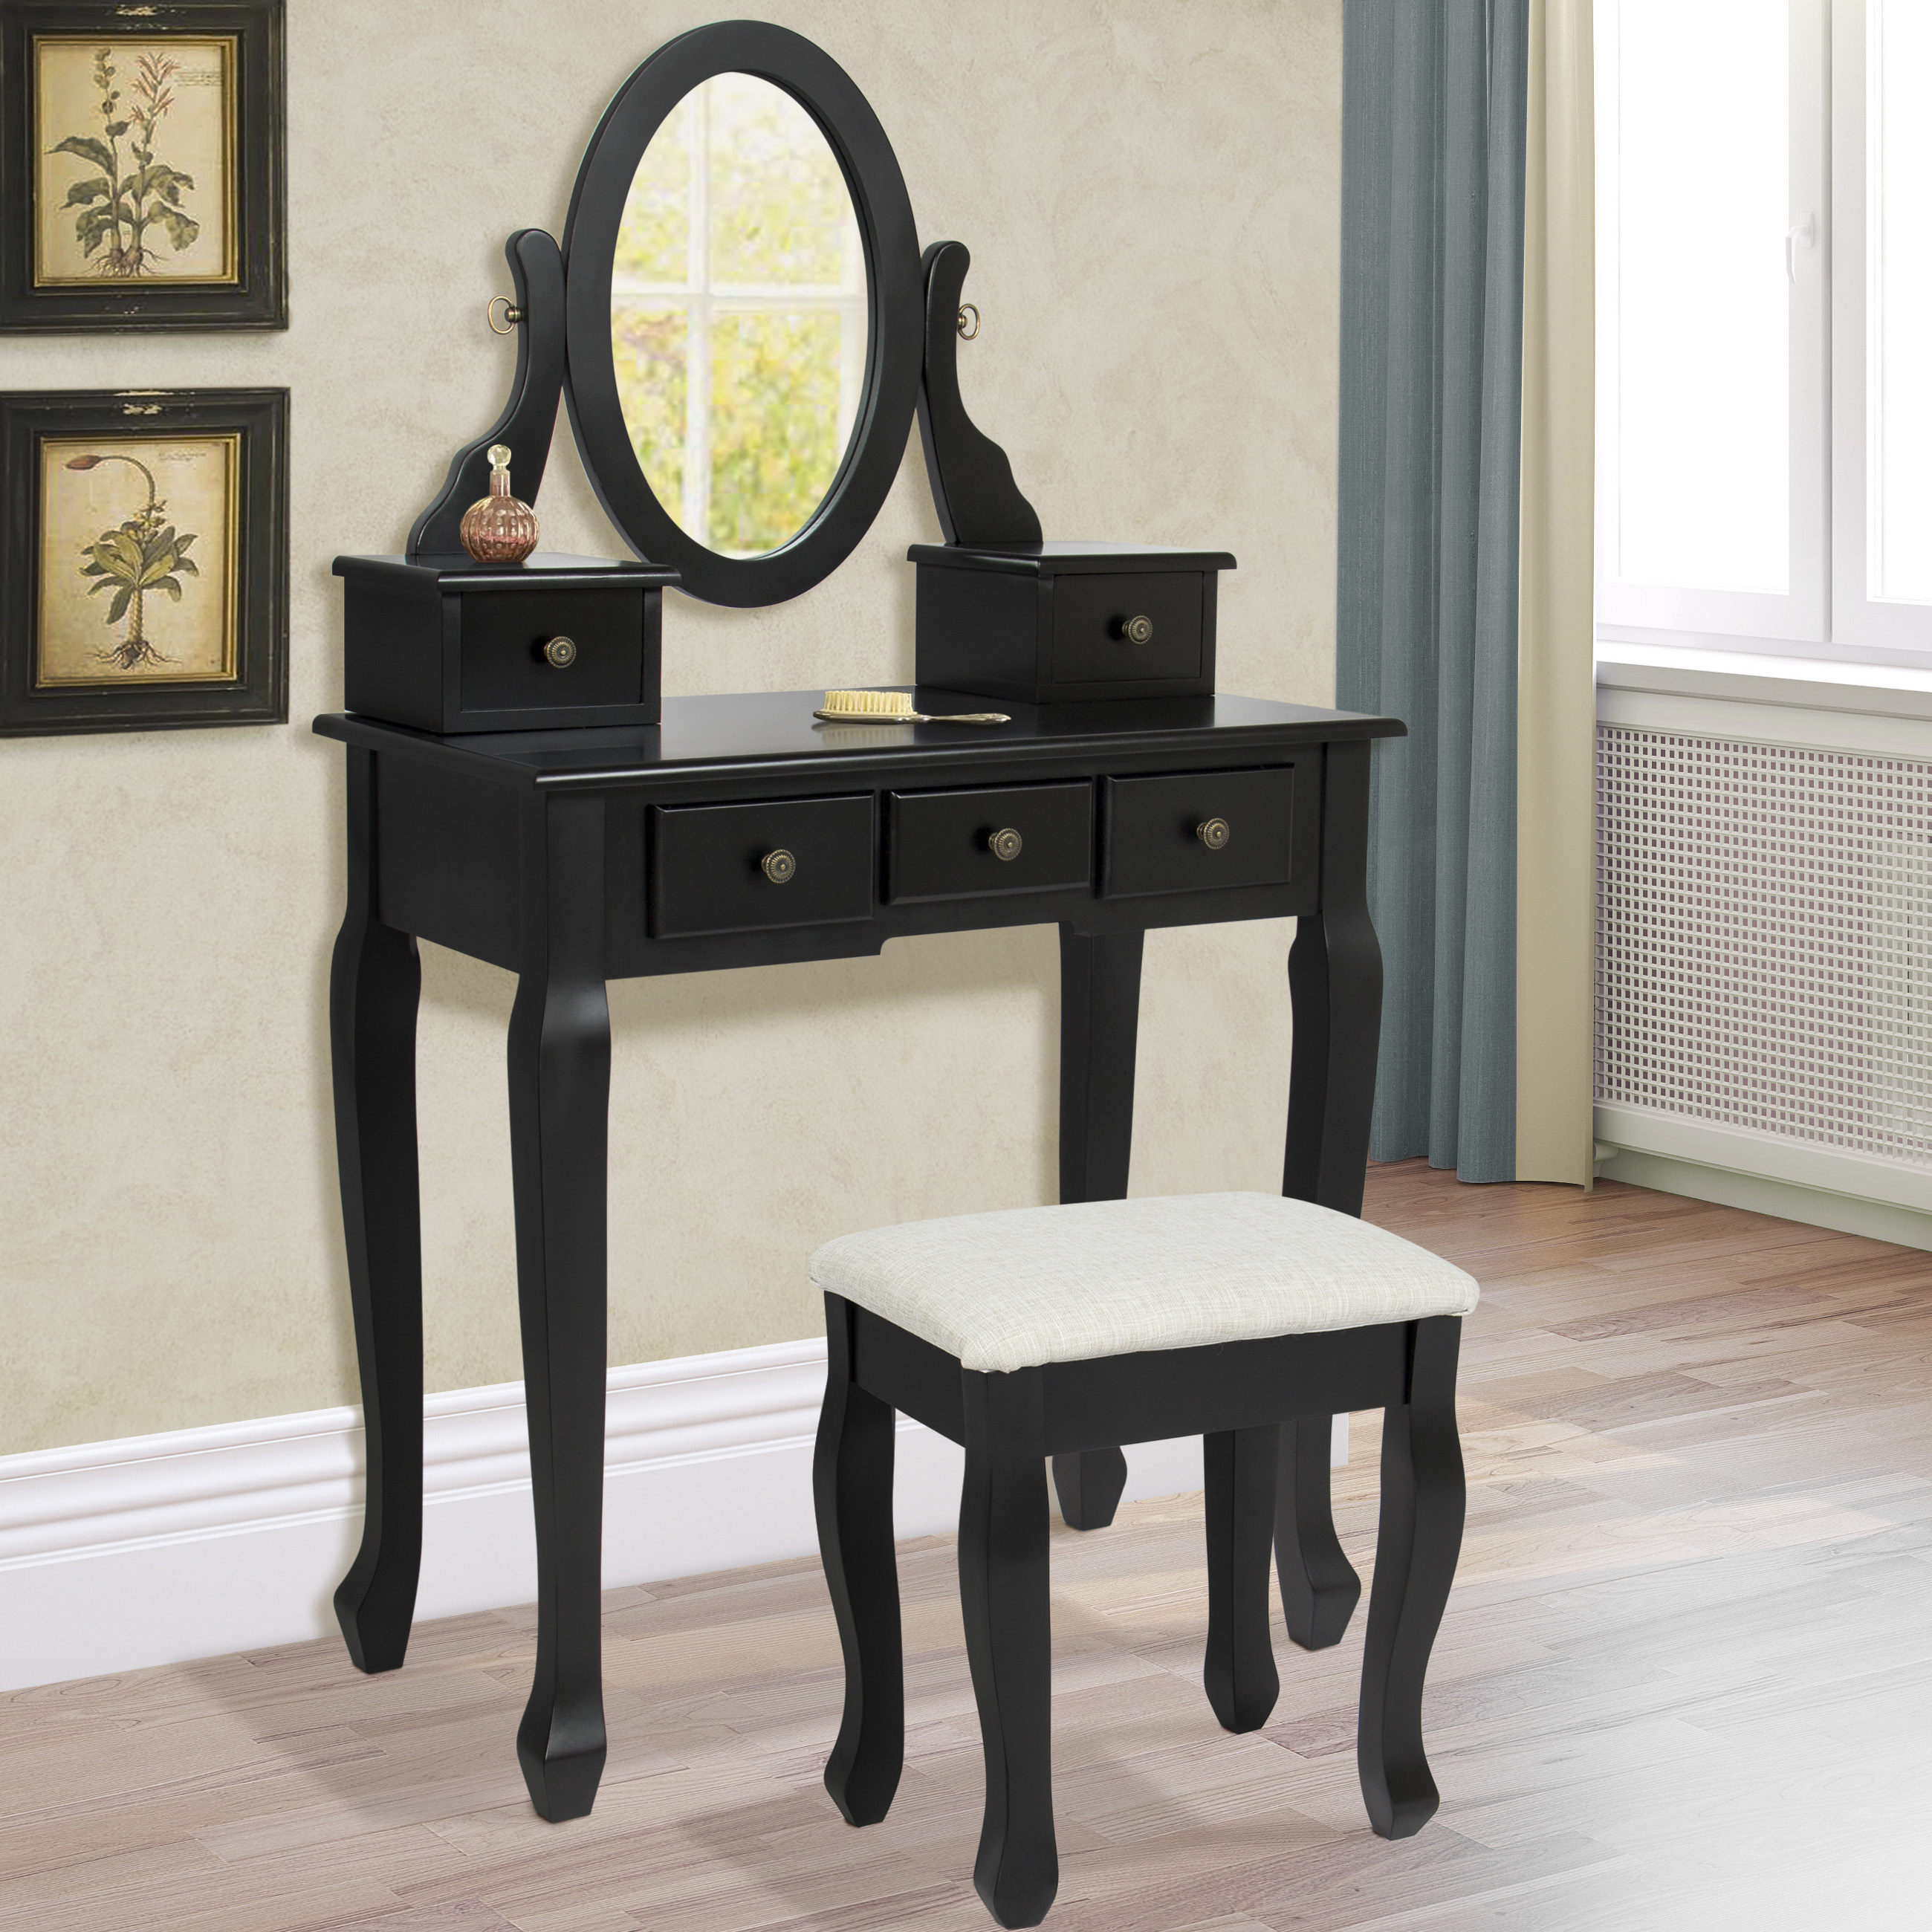 Vanity Table Jewelry Makeup Desk Bench Drawer Black Solid Wood Construction  New. Vanity Table Jewelry Makeup Desk Bench Drawer Black Solid Wood